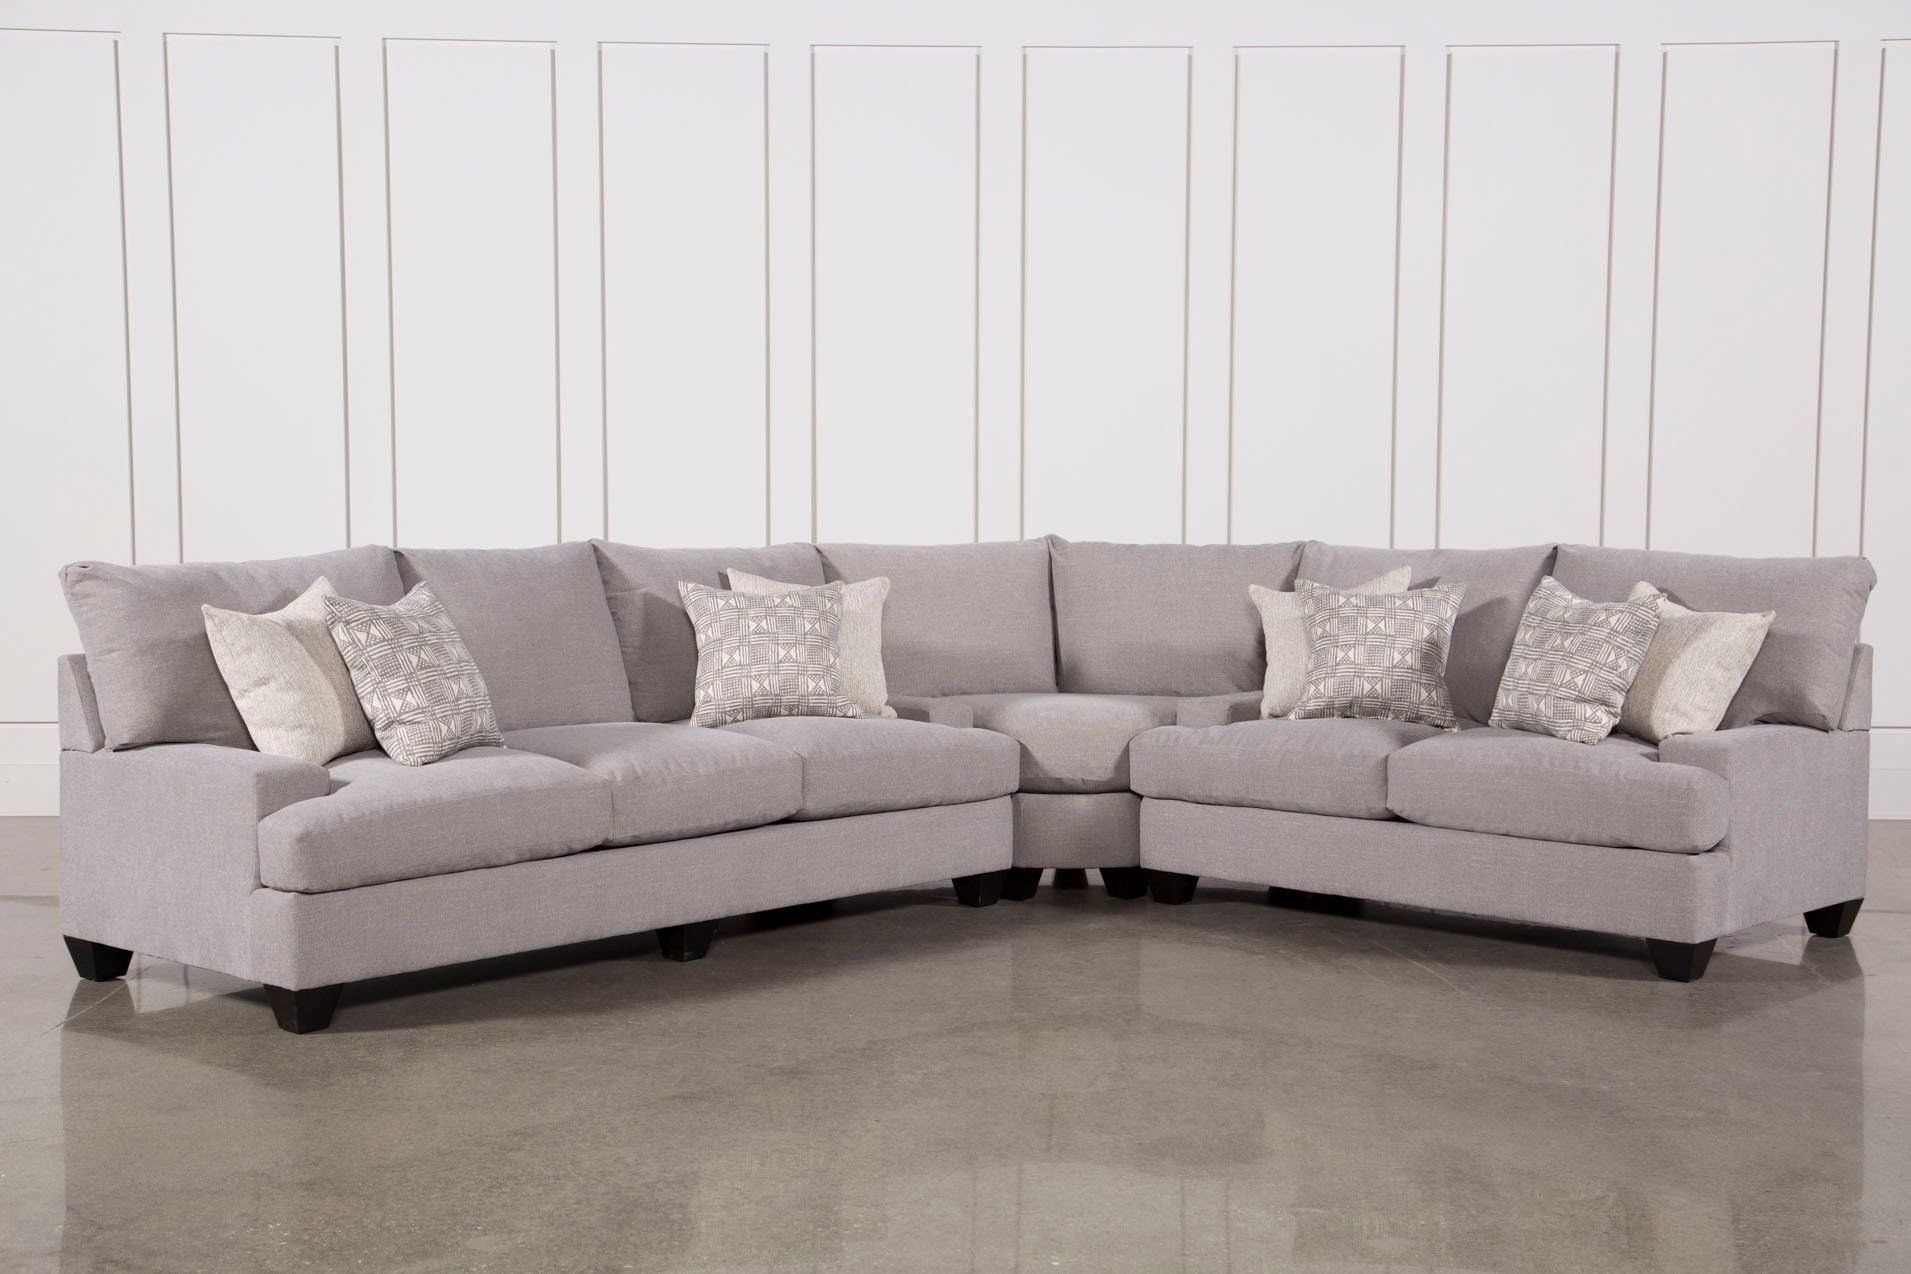 Harper Down 3 Piece Sectional | Livingroom Media | Pinterest With Regard To Adeline 3 Piece Sectionals (View 3 of 25)